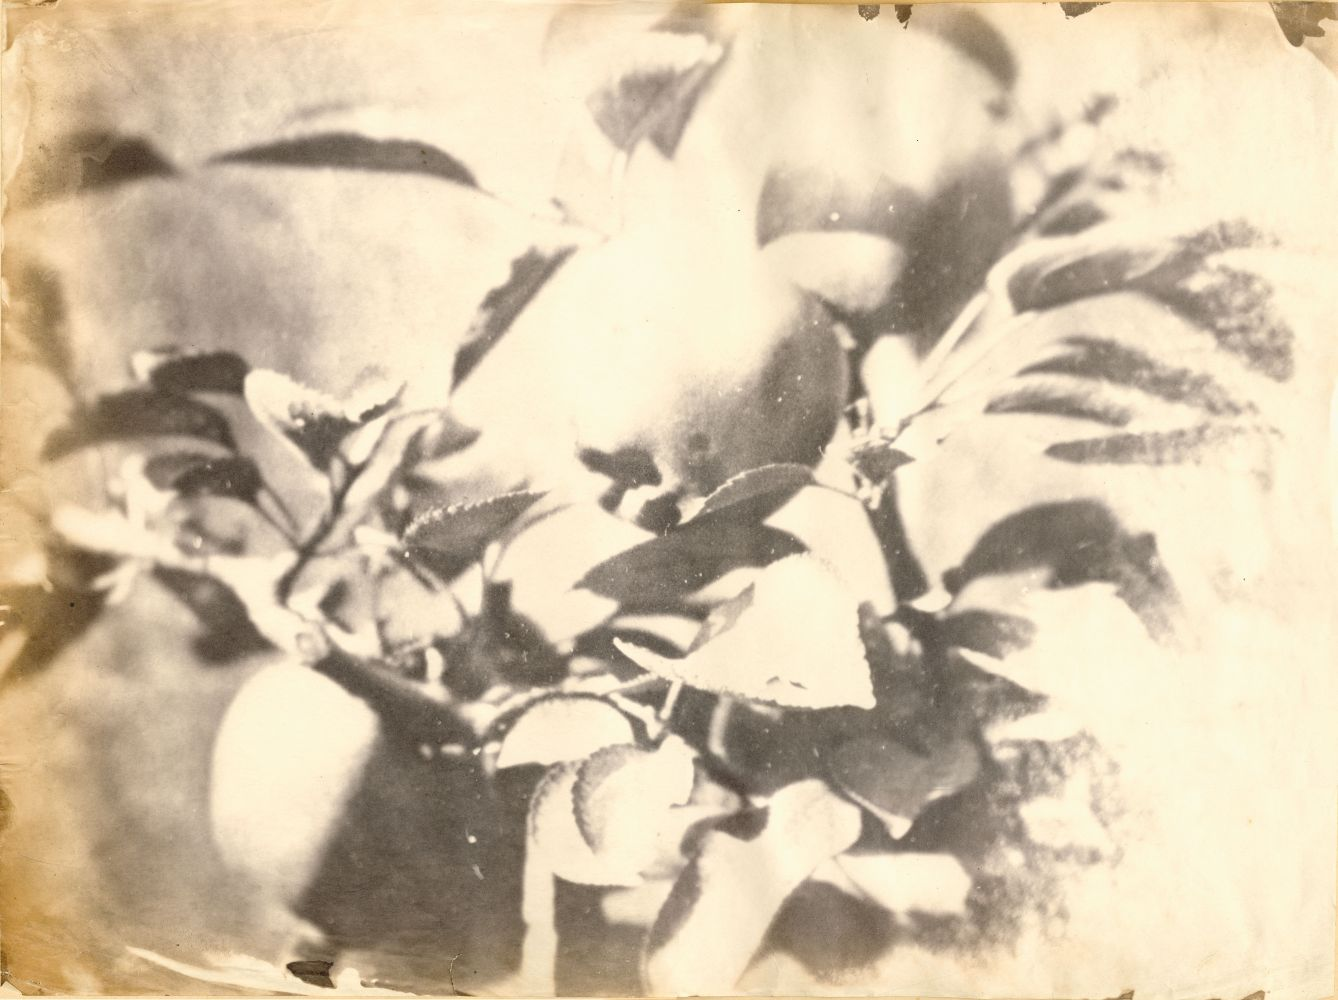 "Unidentified photographer attributed to the Circle of Charles Simart Branch of apples (detail), Folio 1 verso*, from the album assembled circa 1856-1860 Salt print from an enlarged collodion negative 32.3 x 43.2 cm Red wetstamp ""A.M."" on verso"